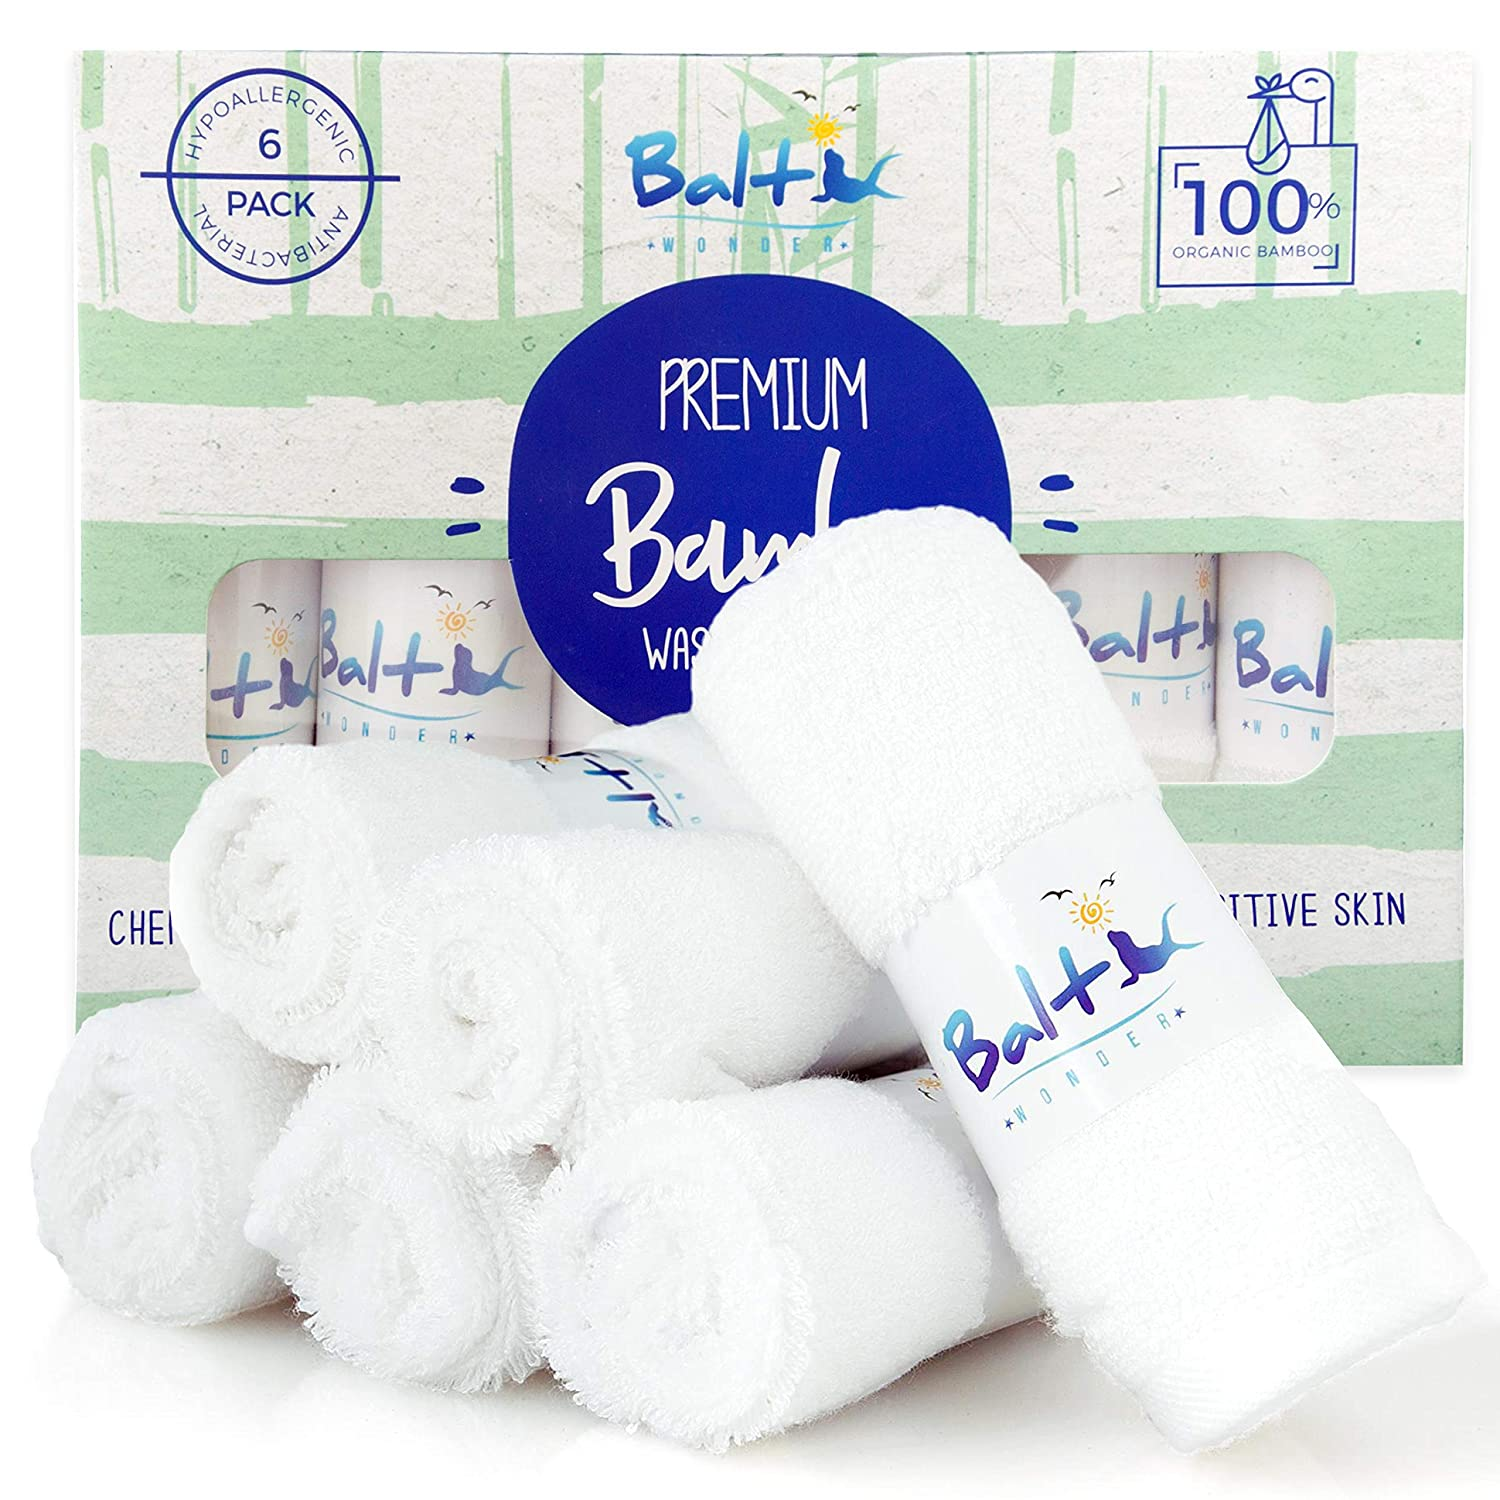 Top 15 Best Baby Towels And Washcloths (2020 Reviews & Buying Guide) 8